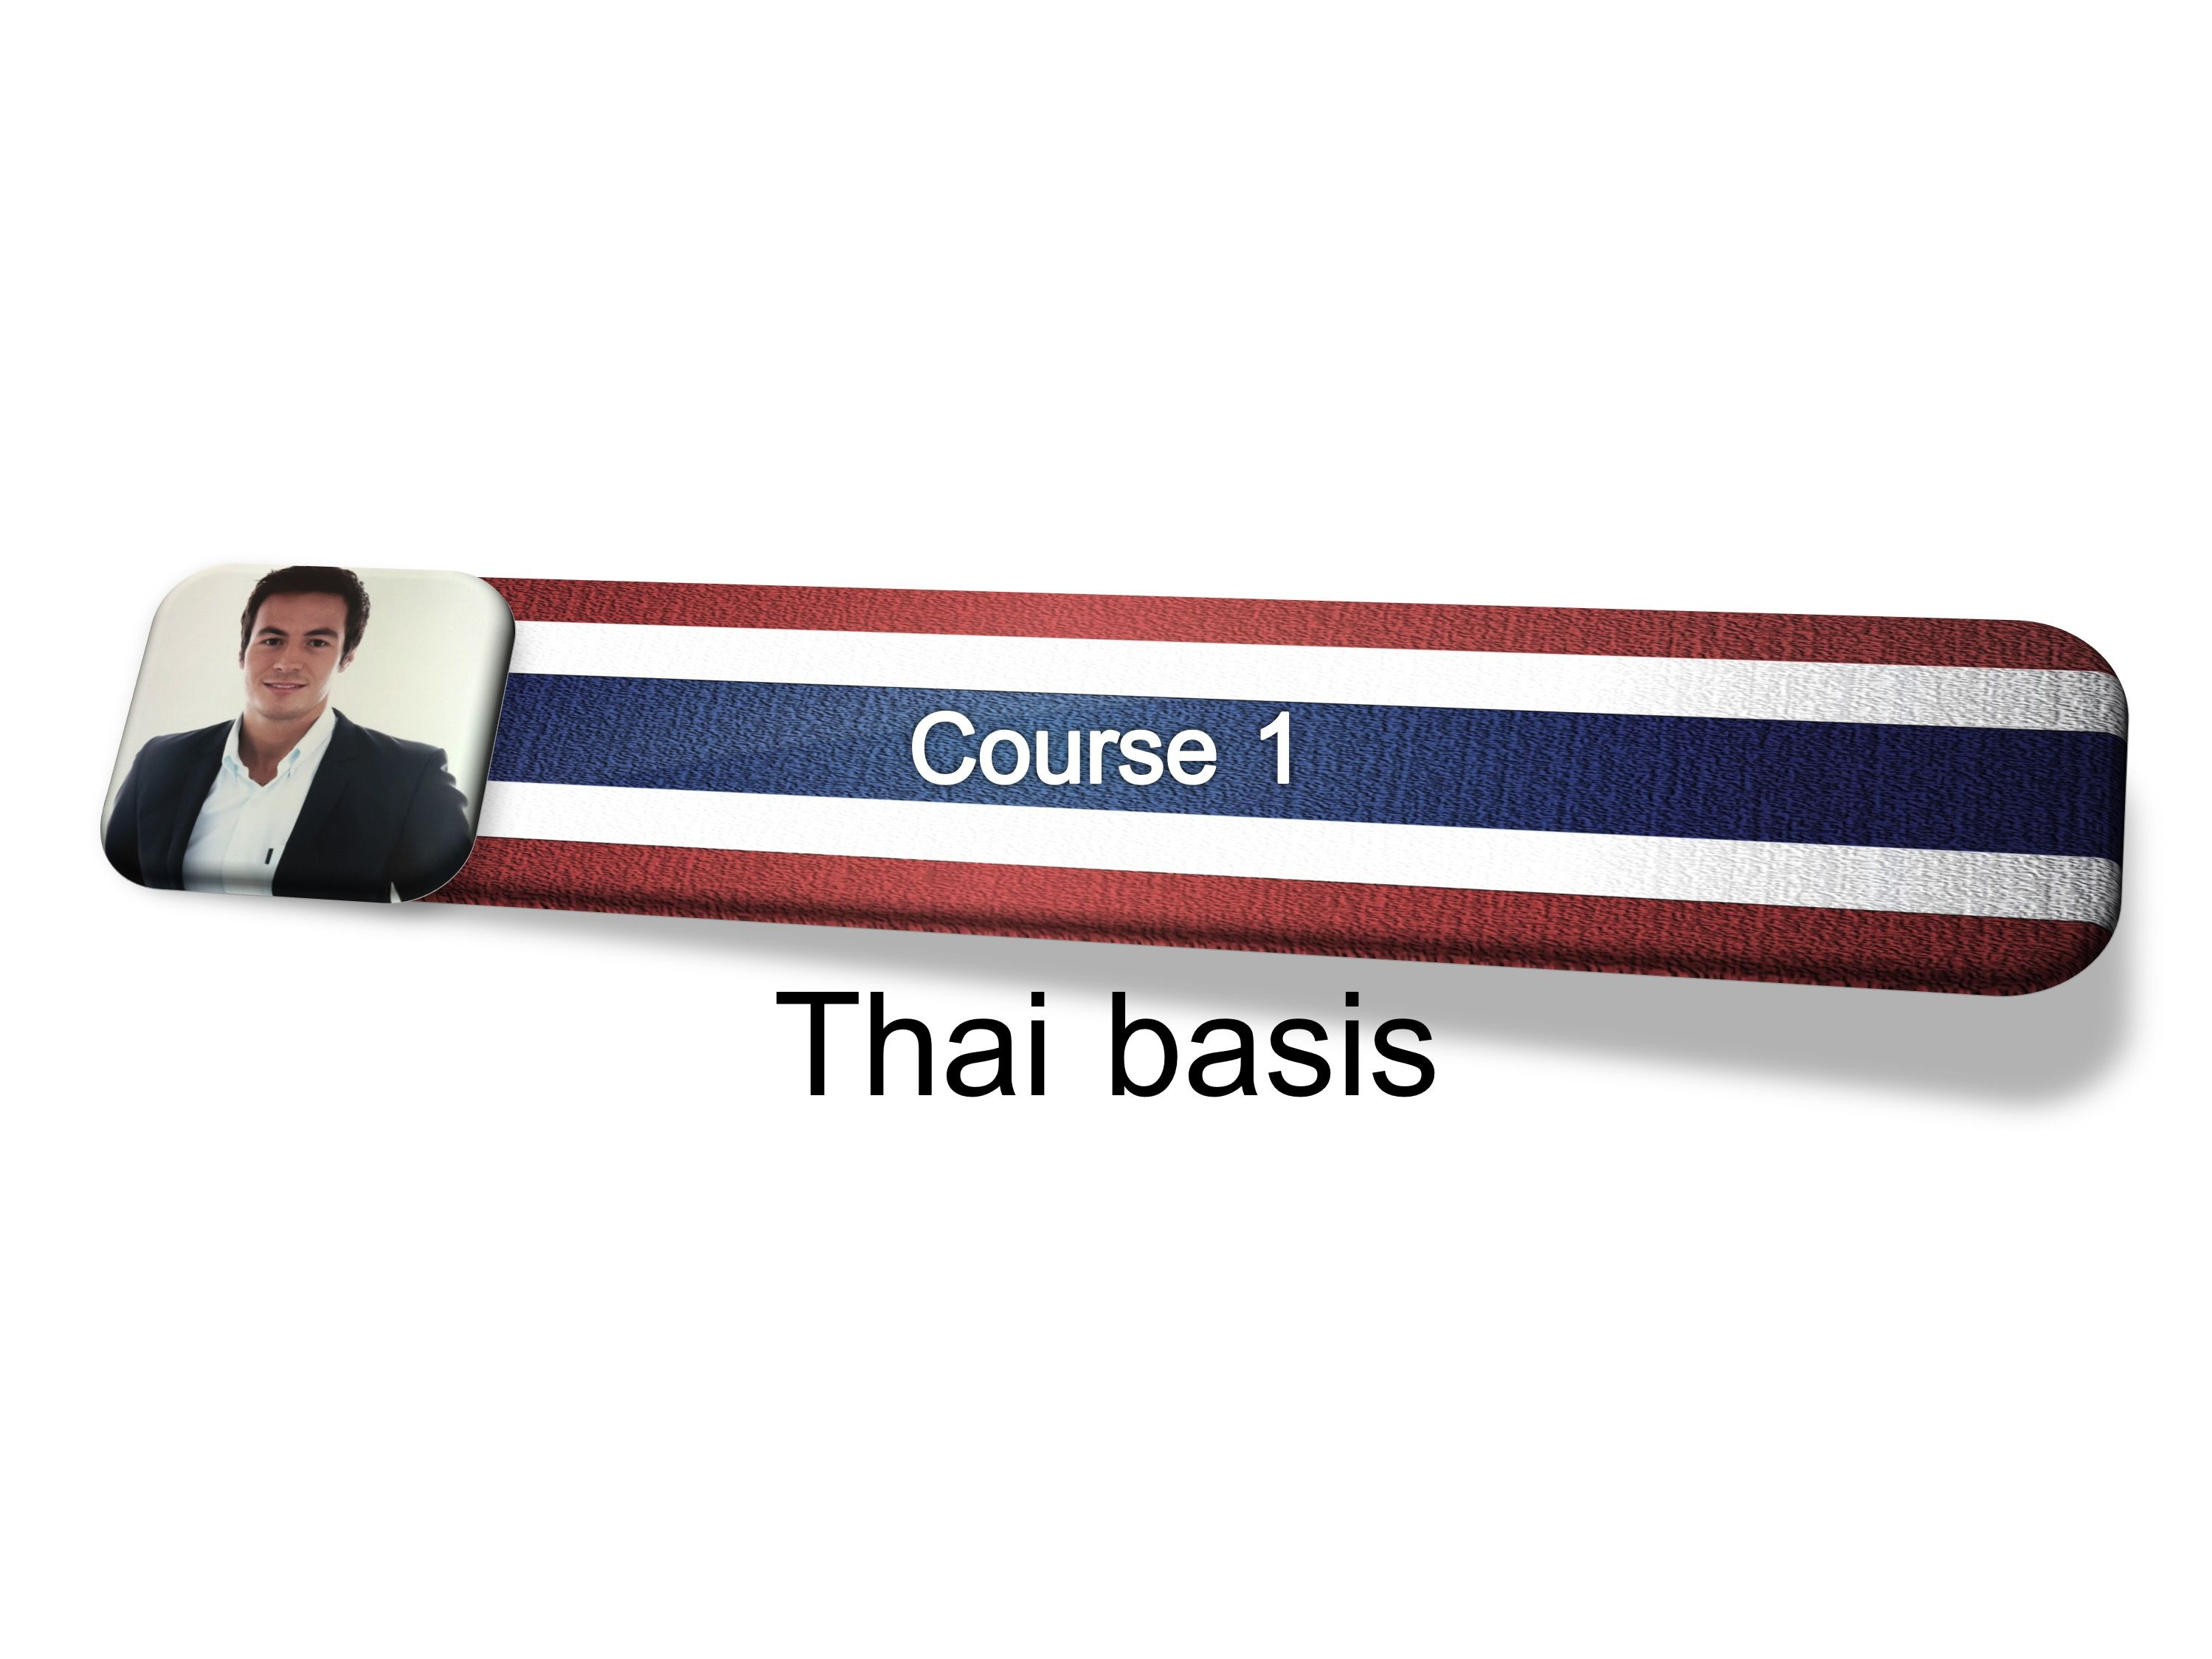 Lern the basic concept of intonation, aspiration and pronunciation in Thai.